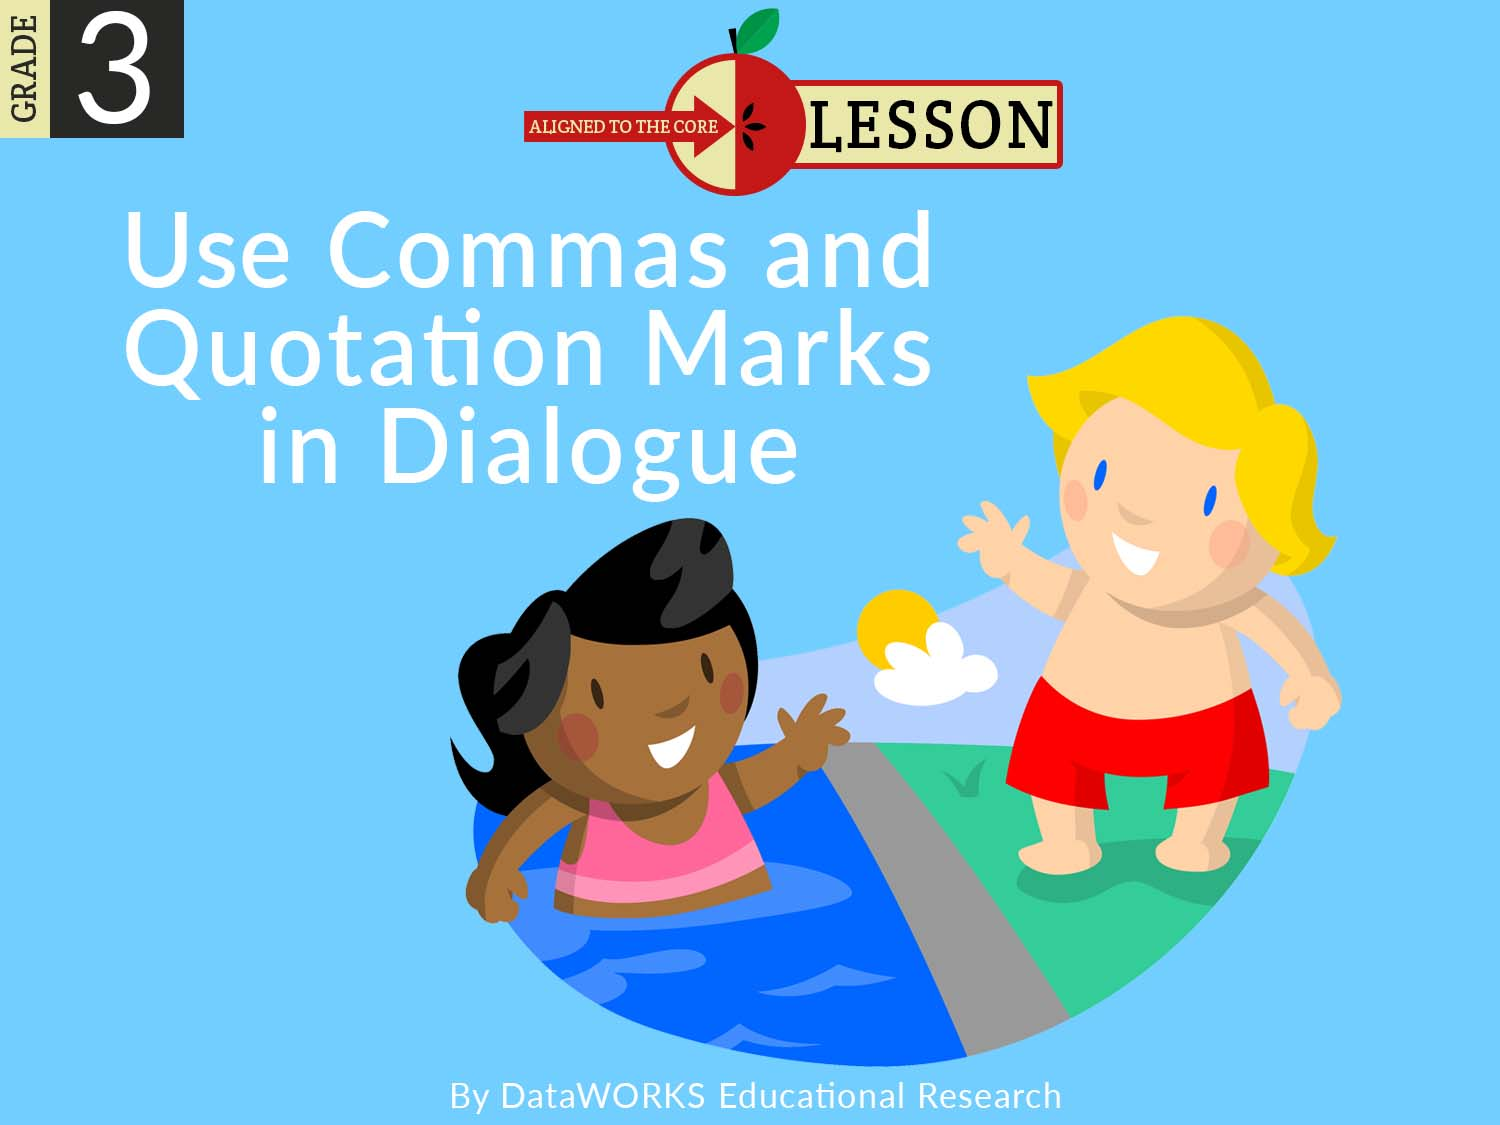 Use Commas and Quotation Marks in Dialogue